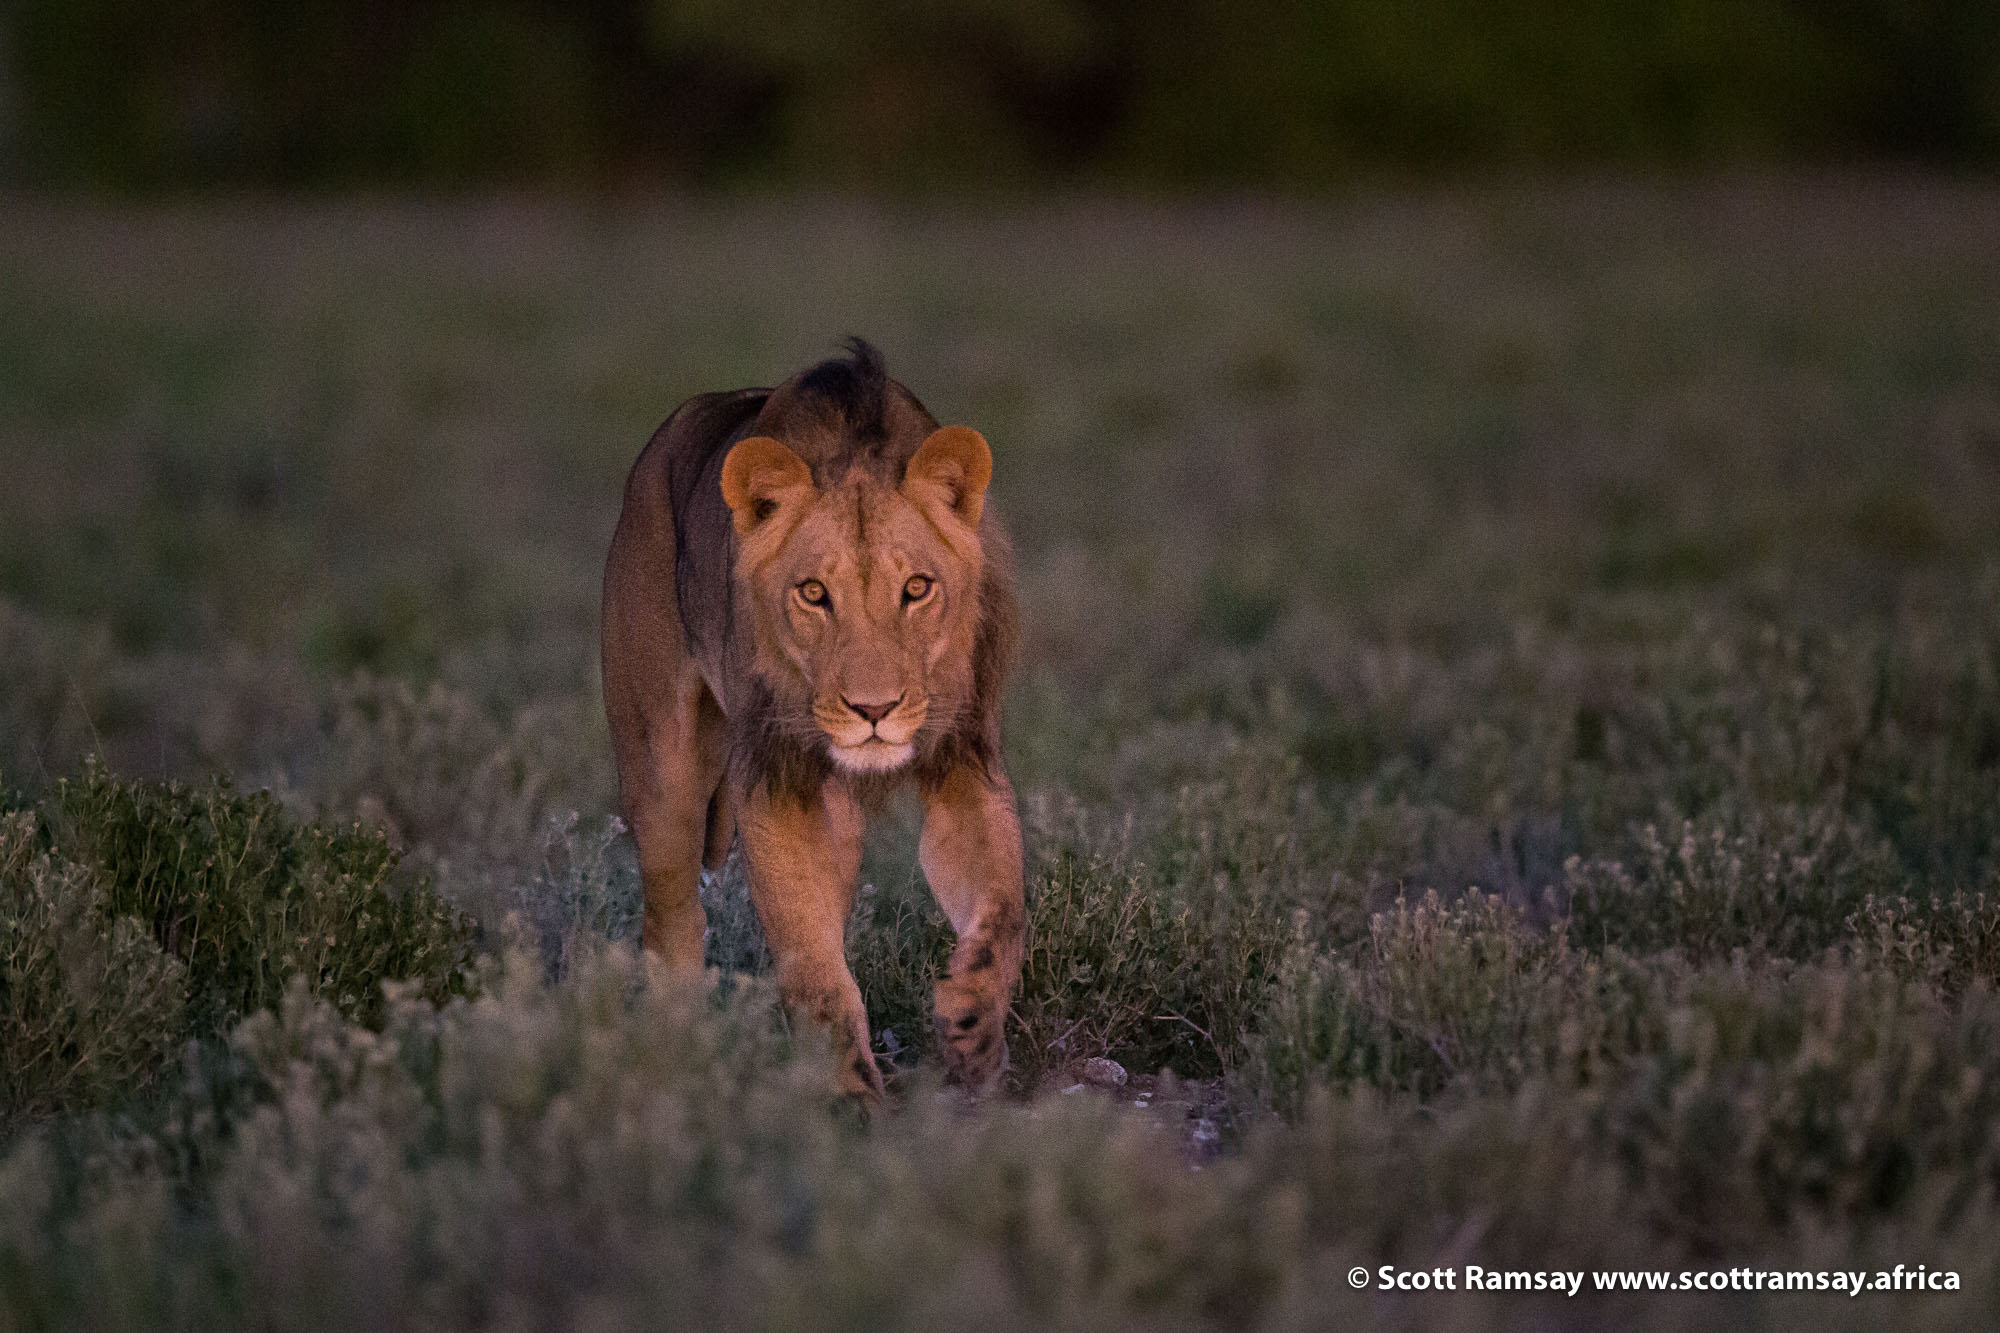 Next thing we see, as the sun is rising, a young male lion walking towards us out of the grasslands...oh hello, sir!